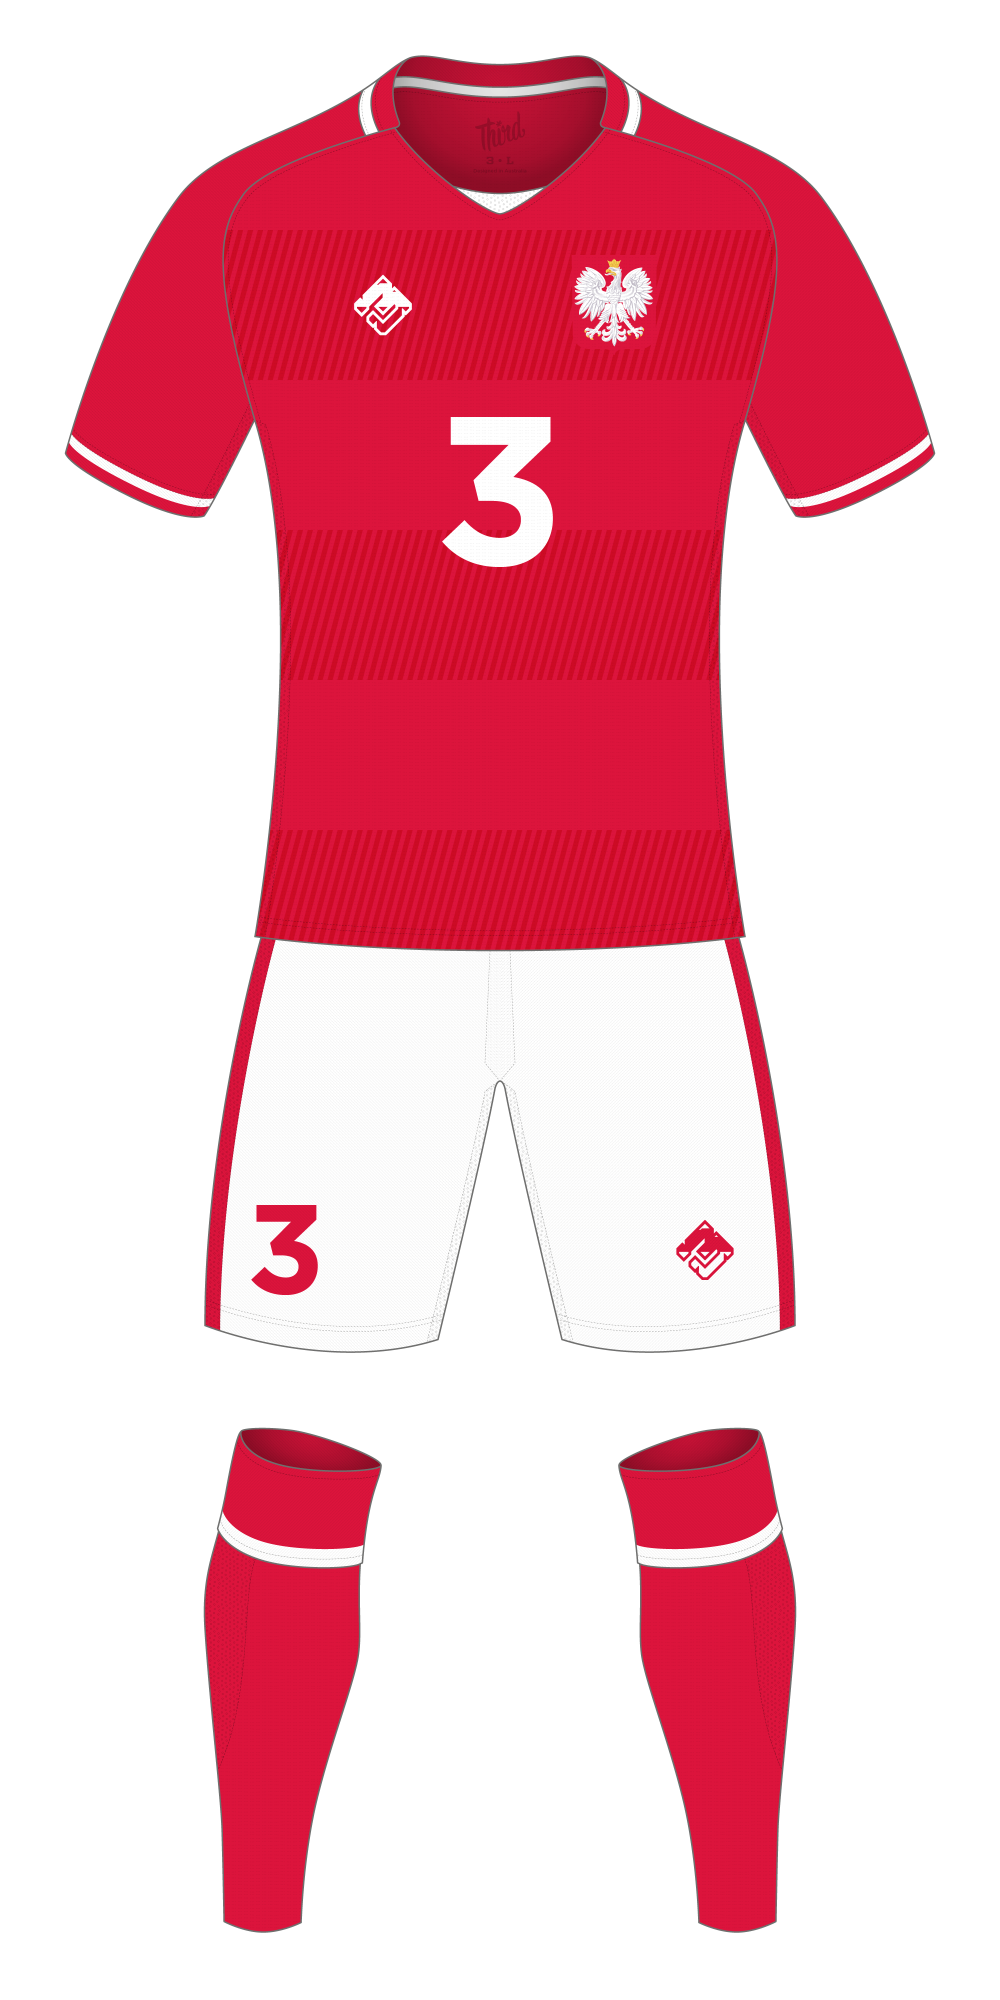 Poland World Cup 2018 concept